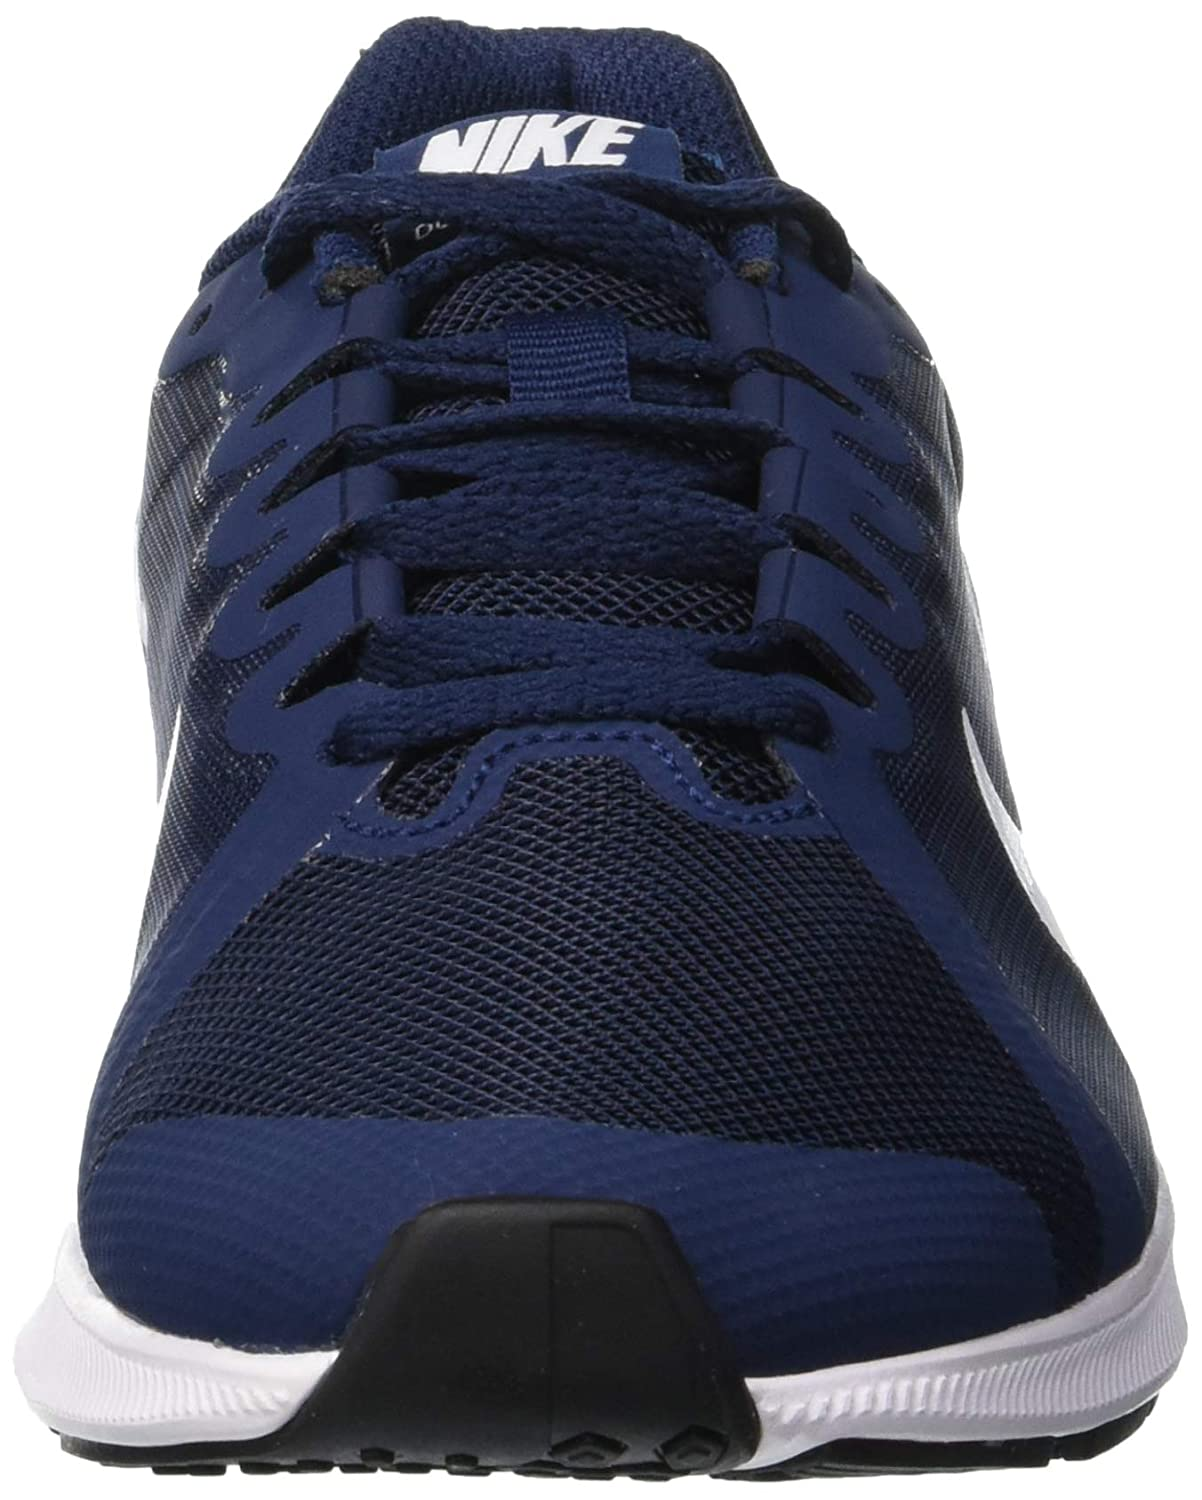 Midnight Navy//White Sneakers GS Nike 922853-400: Boys Downshifter 8 6.5 M US Big Kid